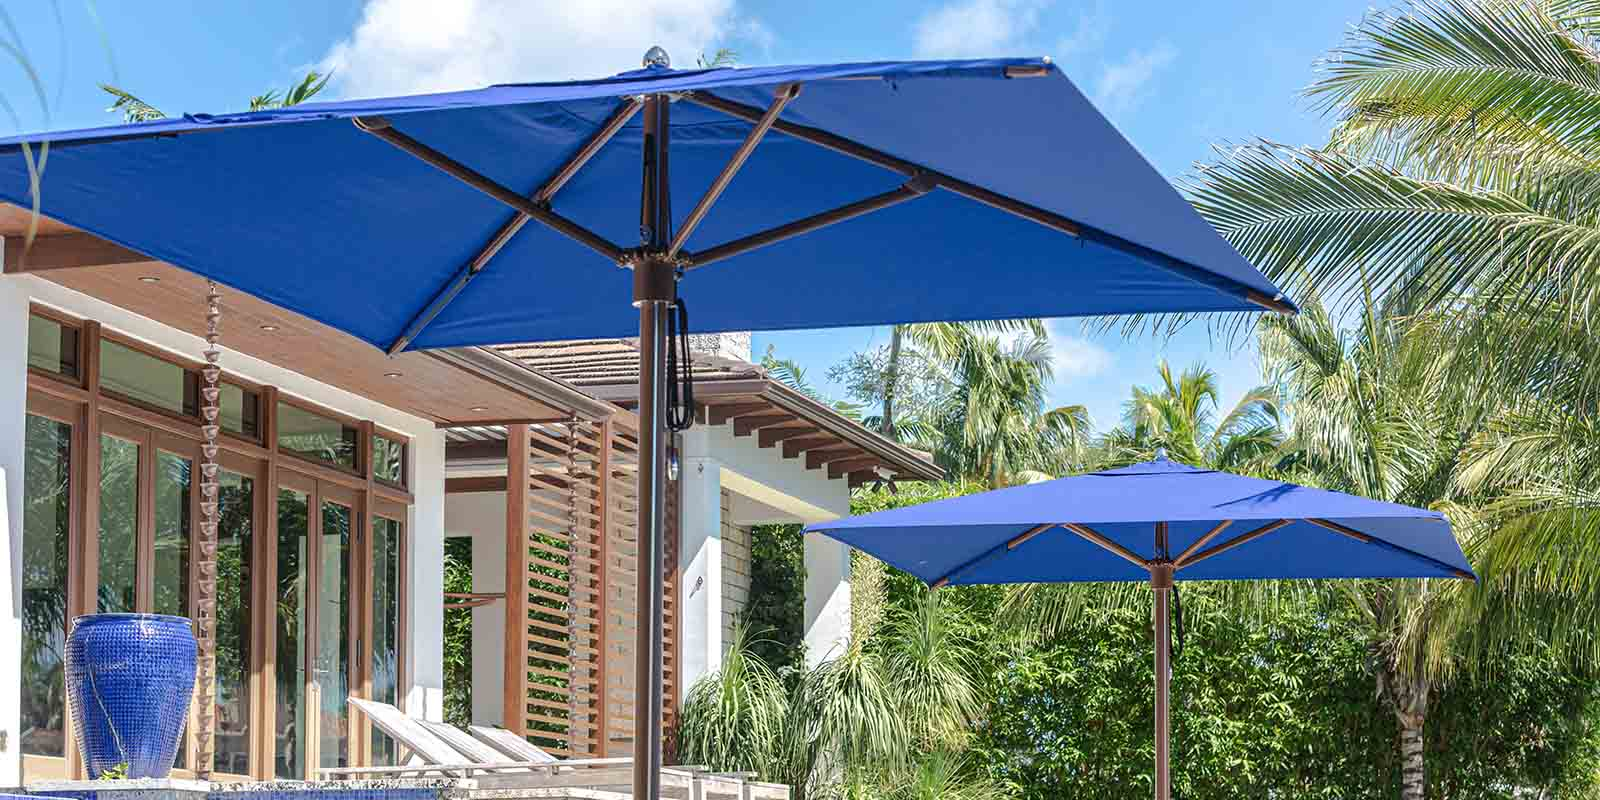 Parasol, Tuuci, The art of living,